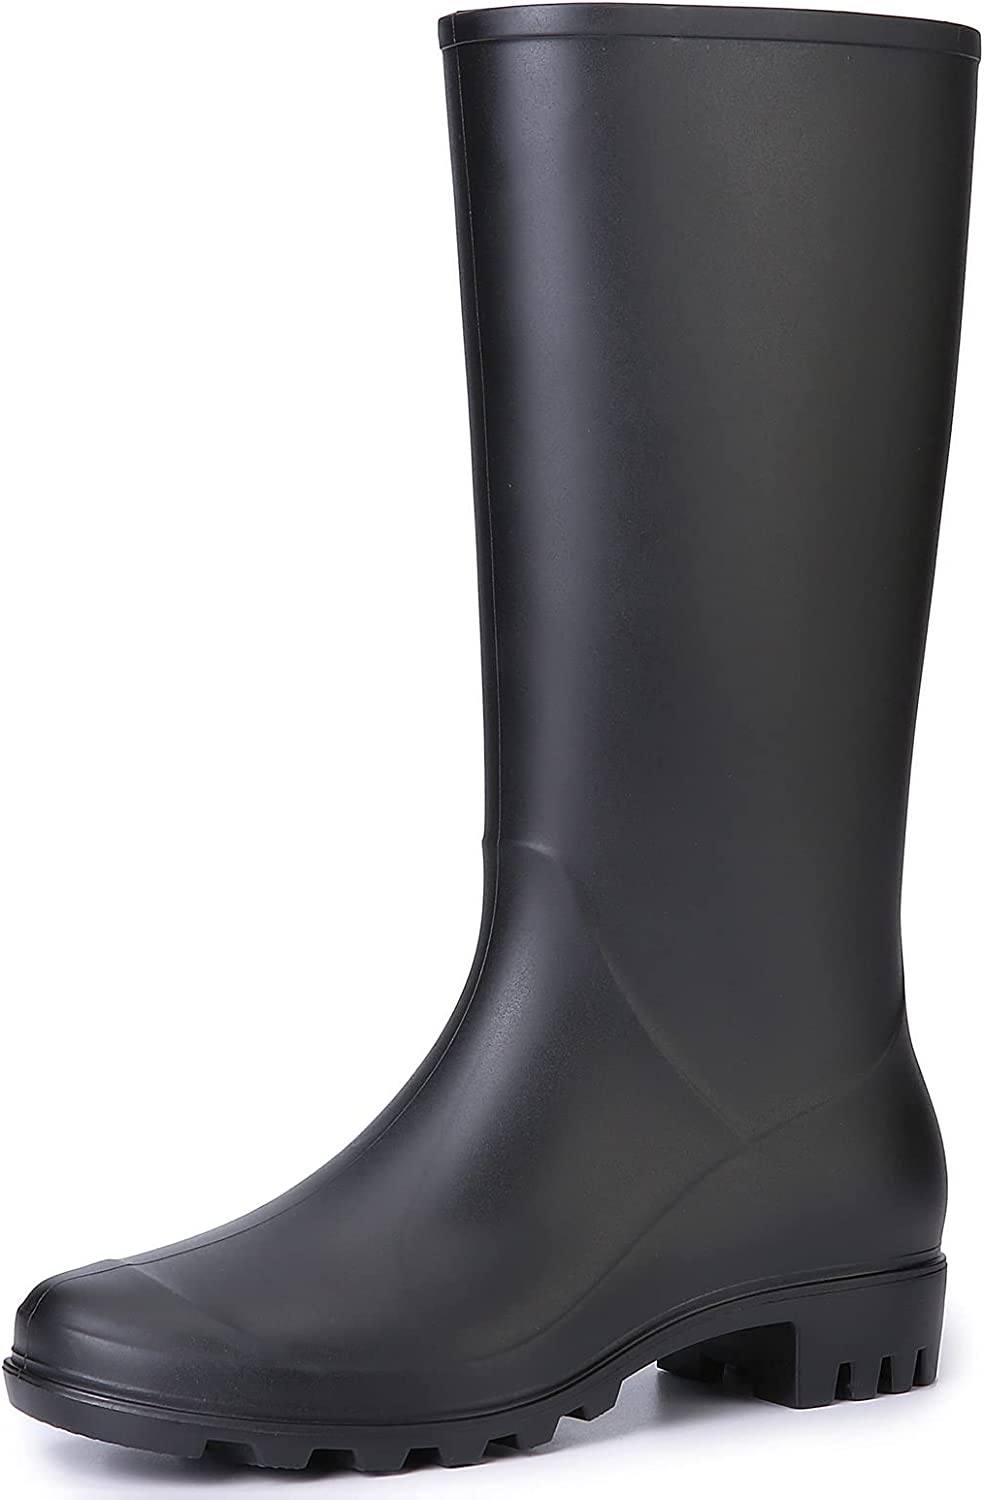 gracosy Rubber Boots for Women, Waterproof Rains Boots with Comfort Insole Garden Boots Mud Boots Anti-Slip Lightweight Fashion Outdoor and Work